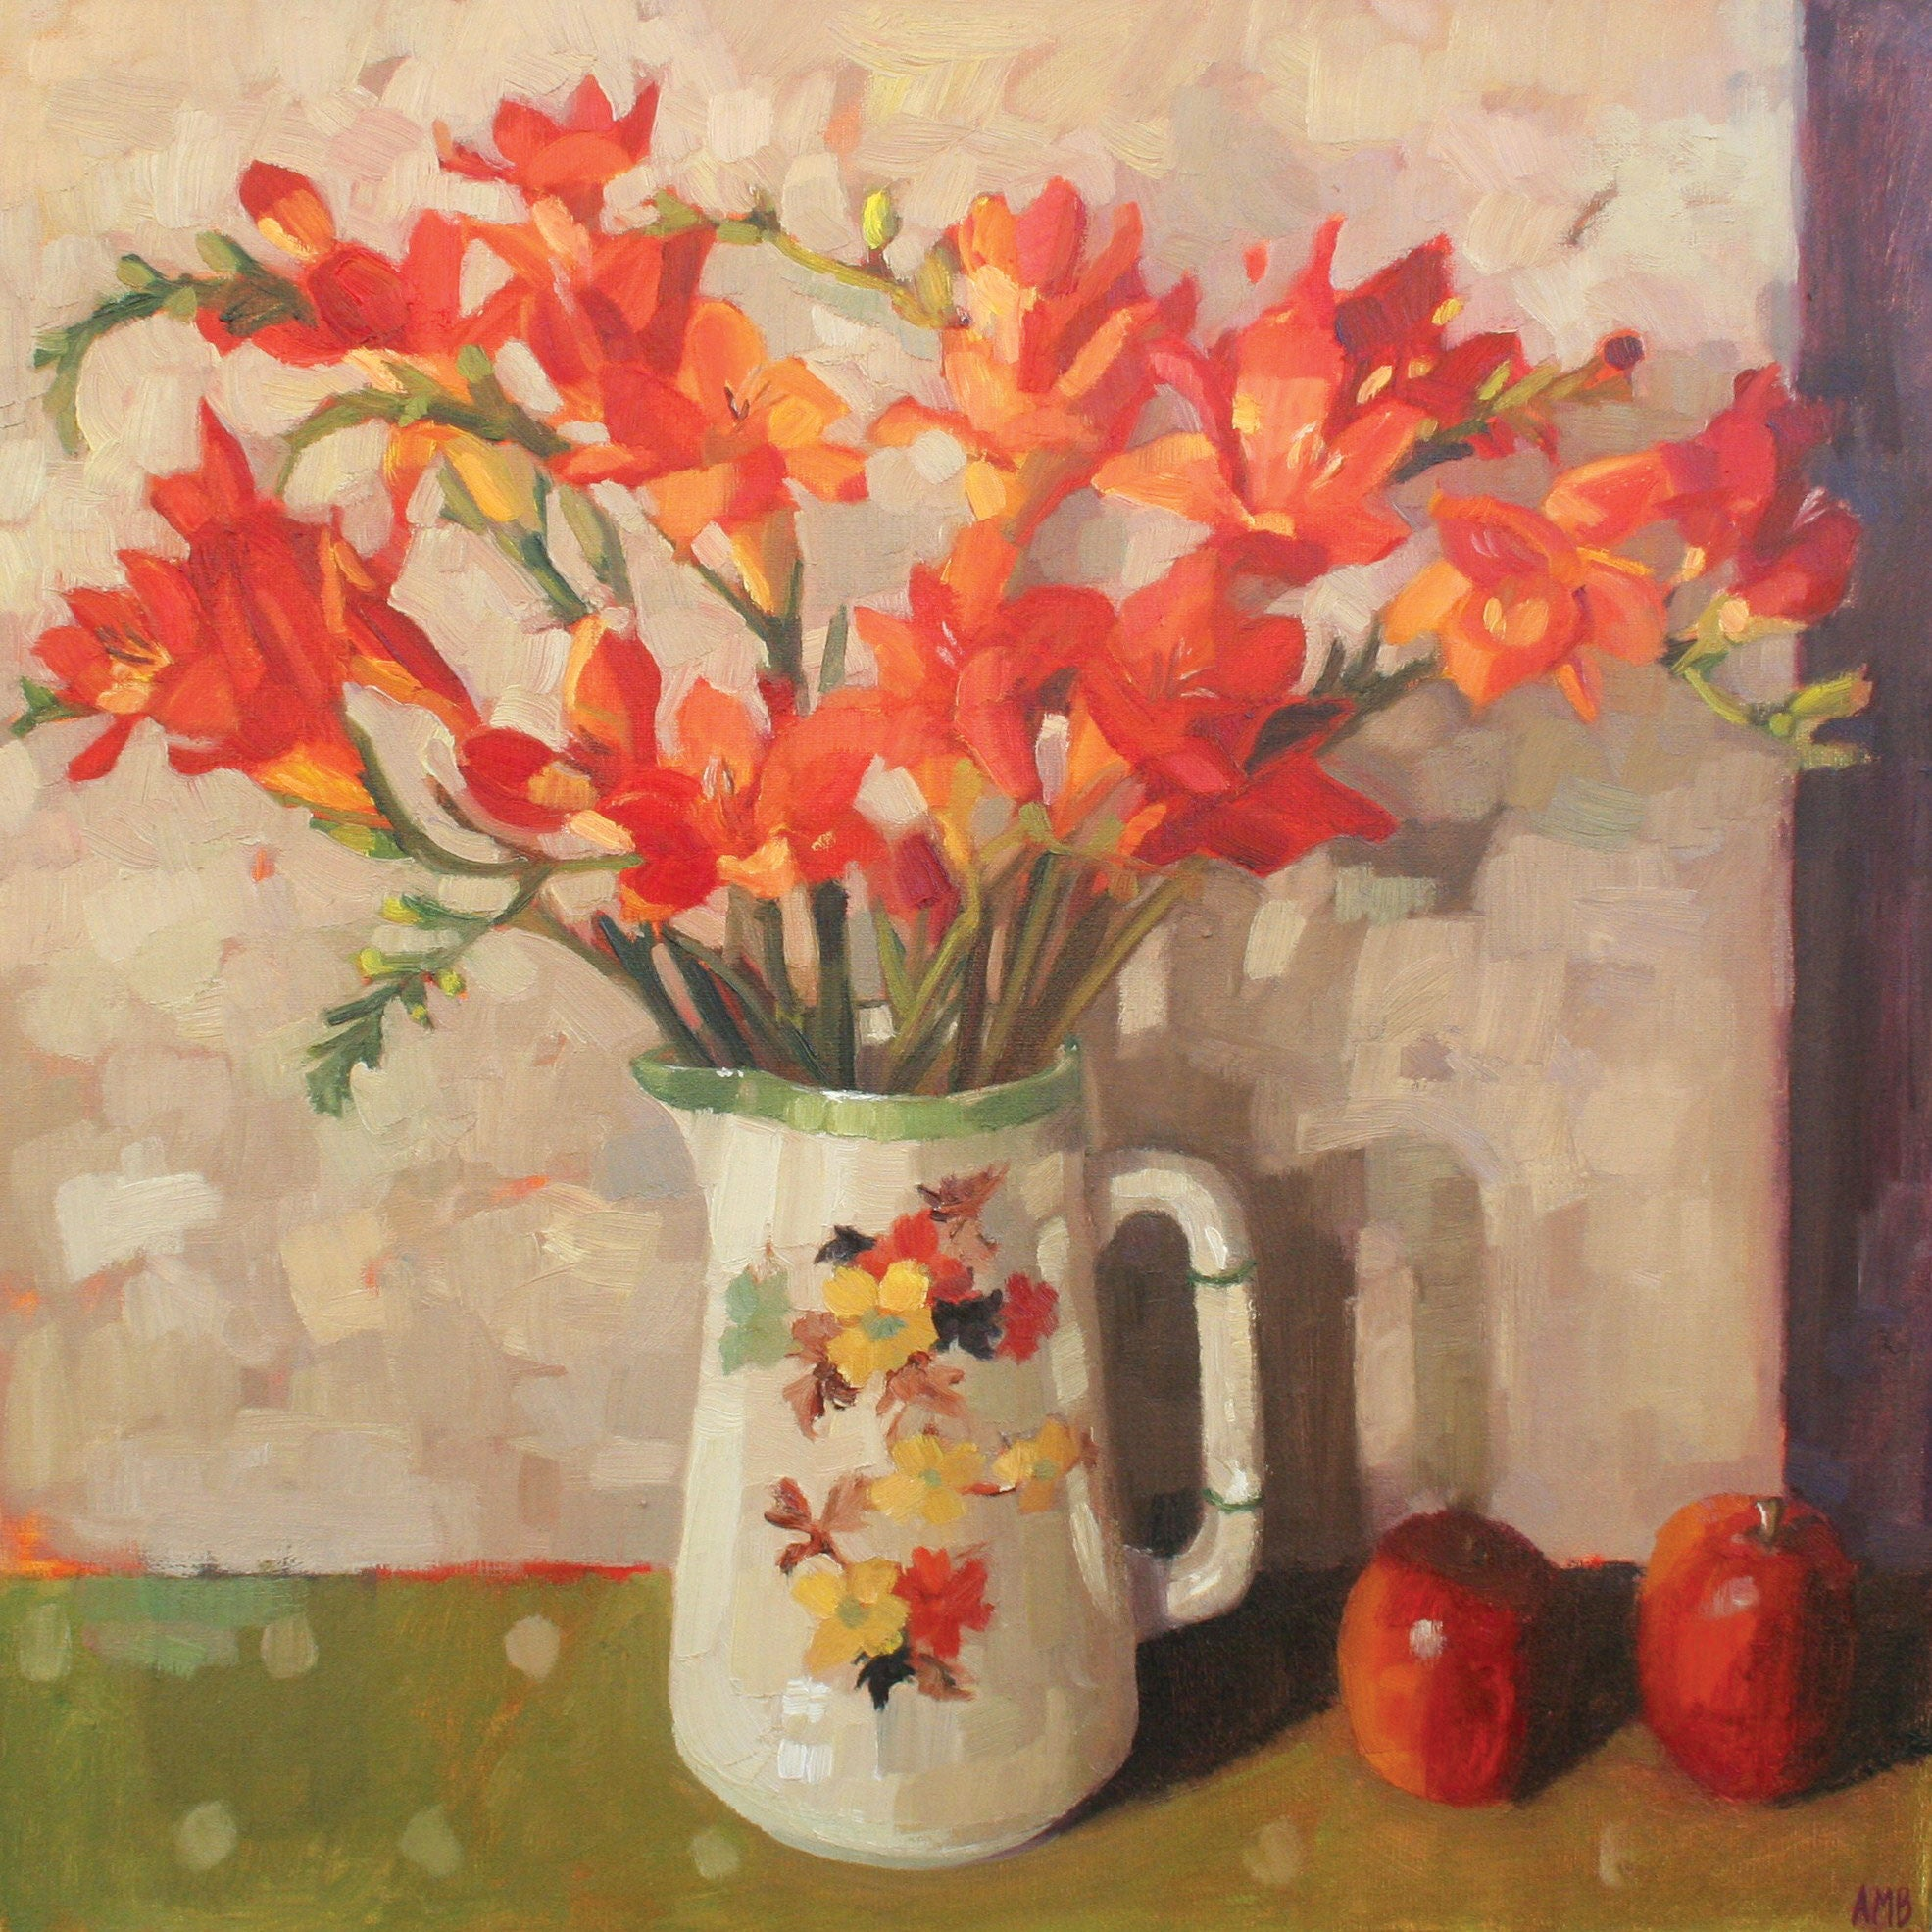 Freesias by Anne-Marie Butlin, Fine Art Greeting Card, Oil on Canvas, Orange freesias in jug and apples